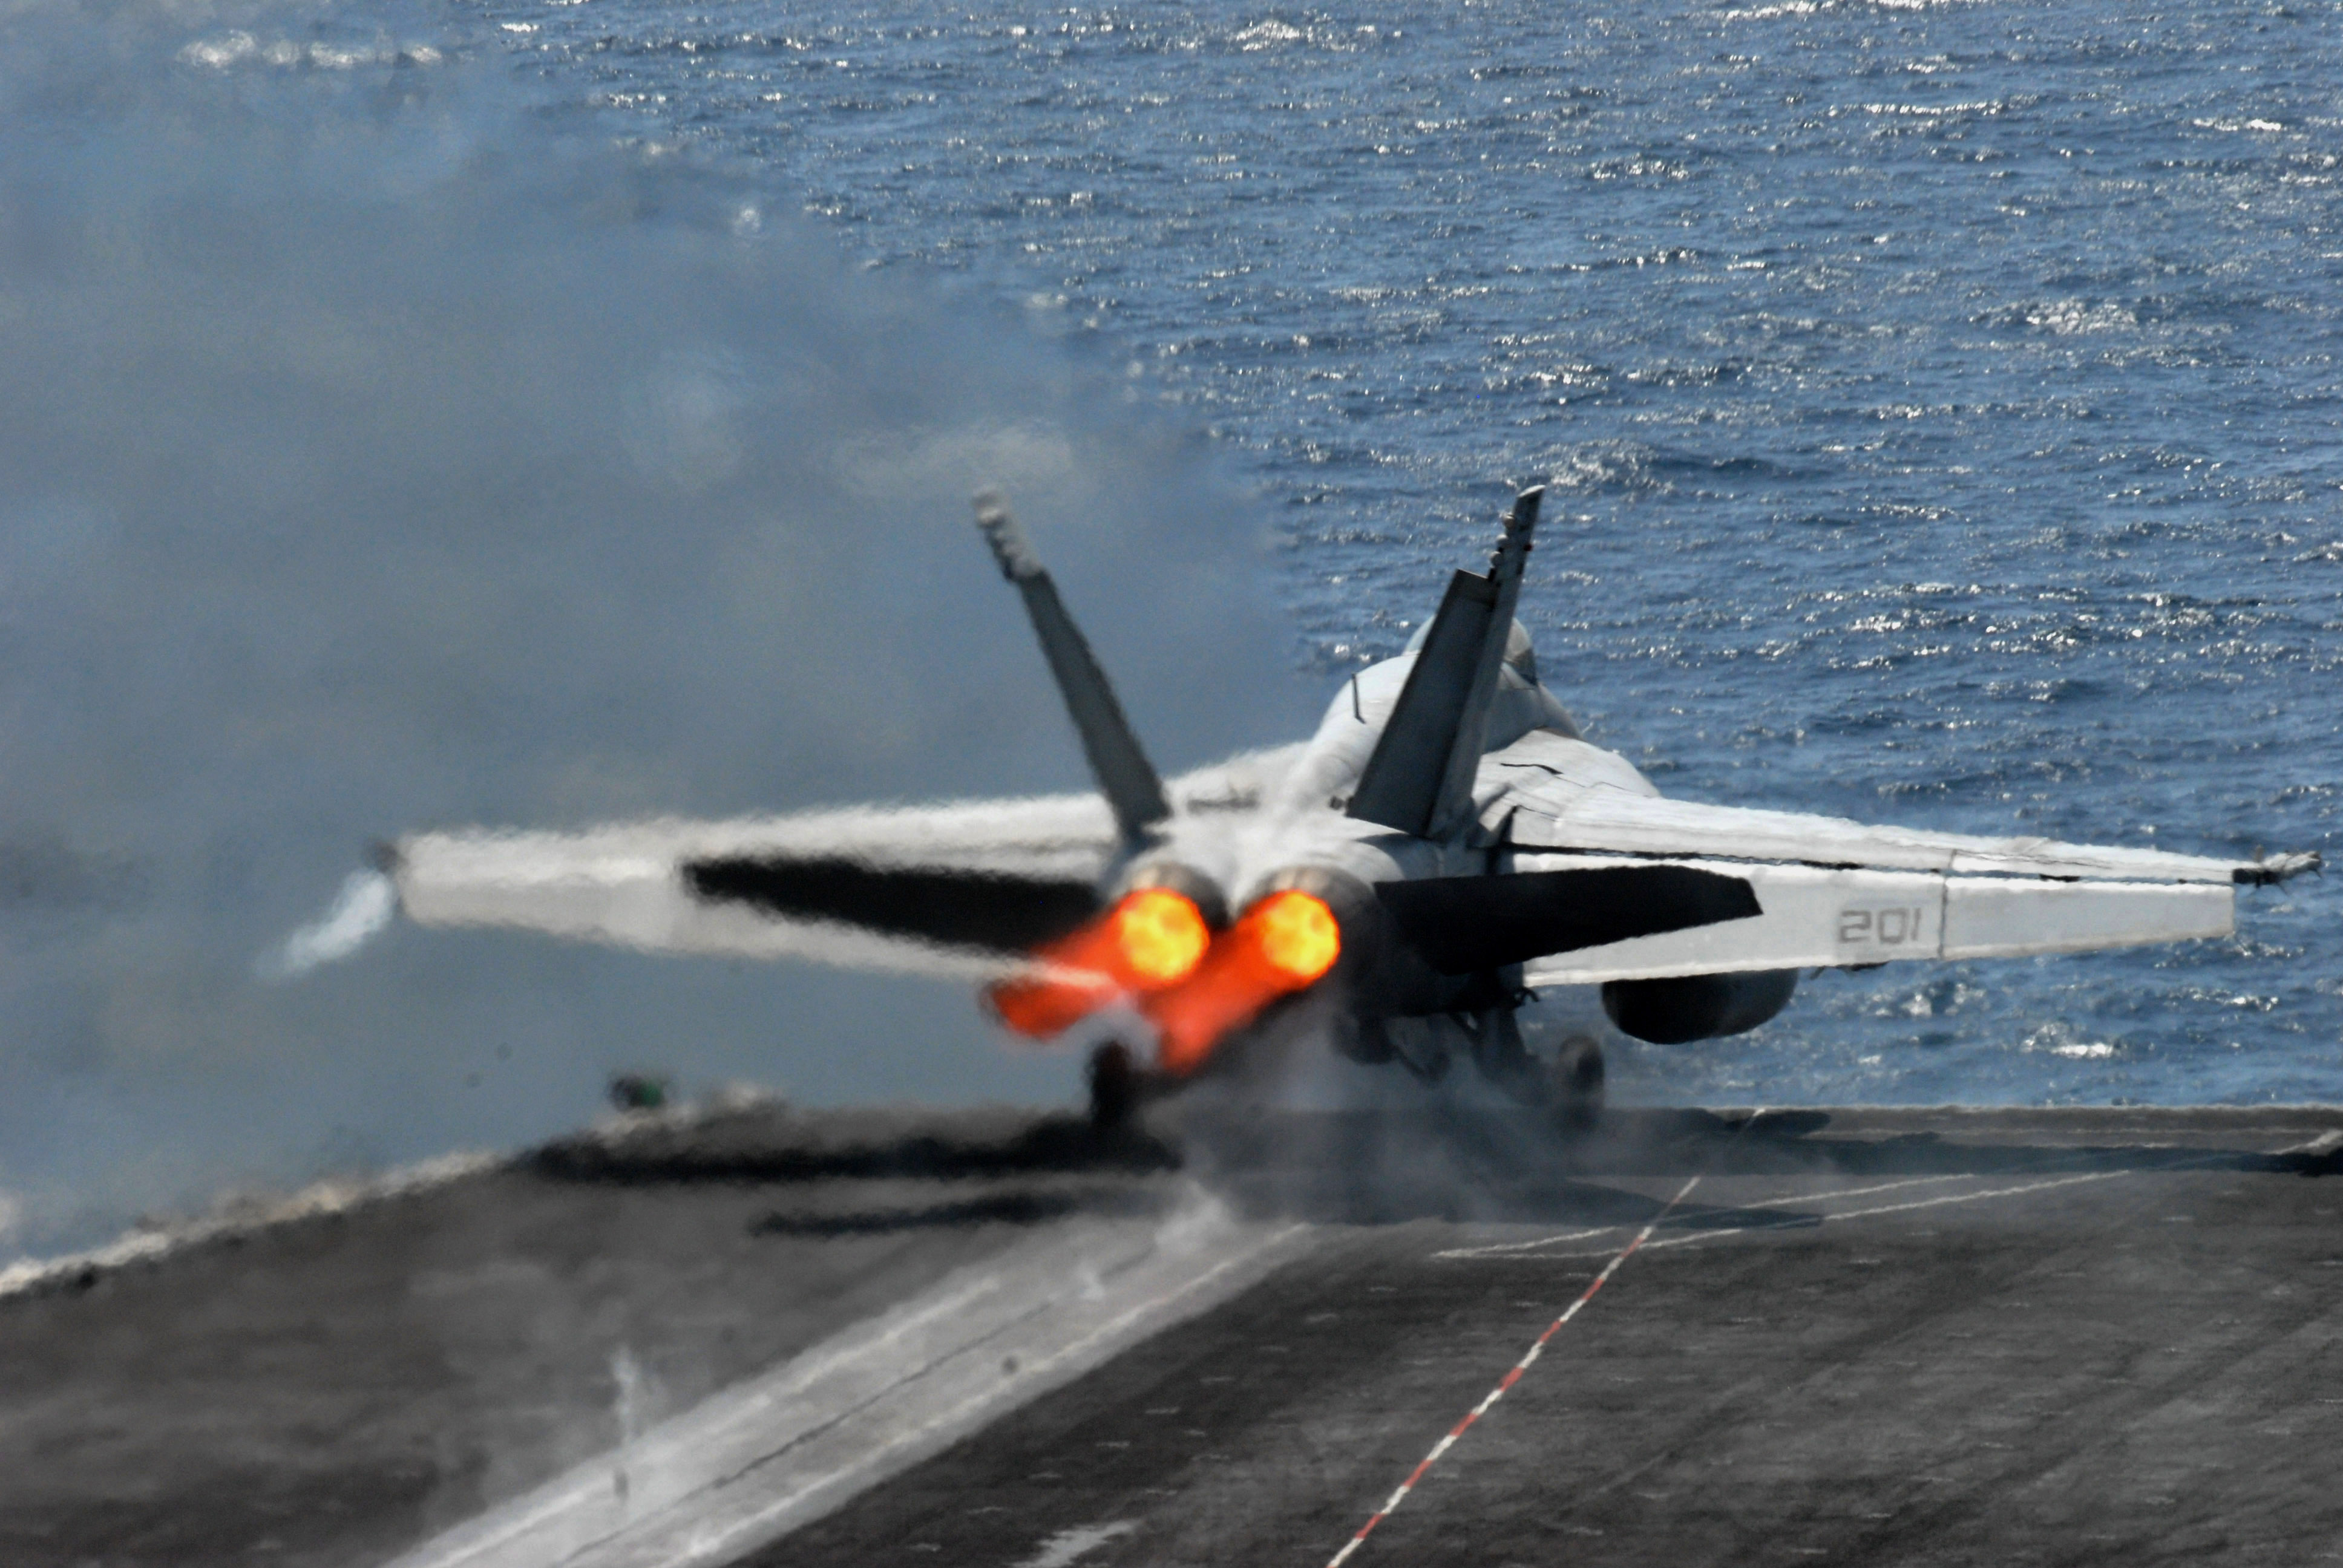 Benefits of Navy-USAF Teamwork: Navy to Turn Seawater into Jet Fuel